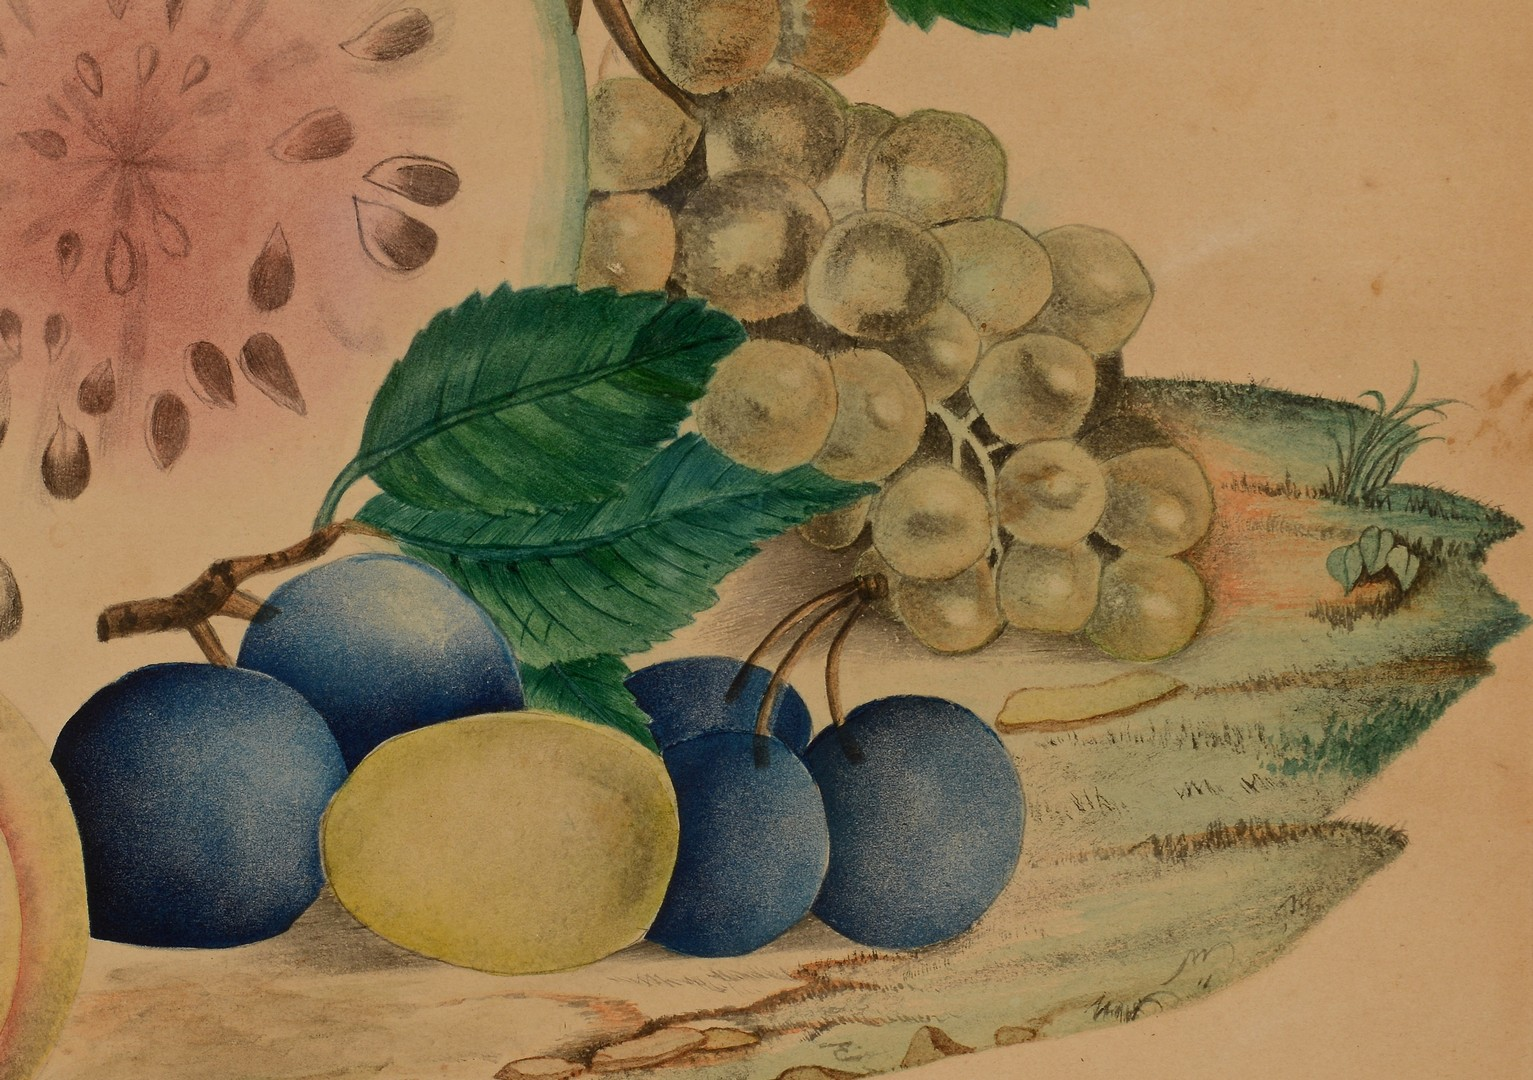 Lot 296: Watercolor Theorem dated 1867, poss. Southern